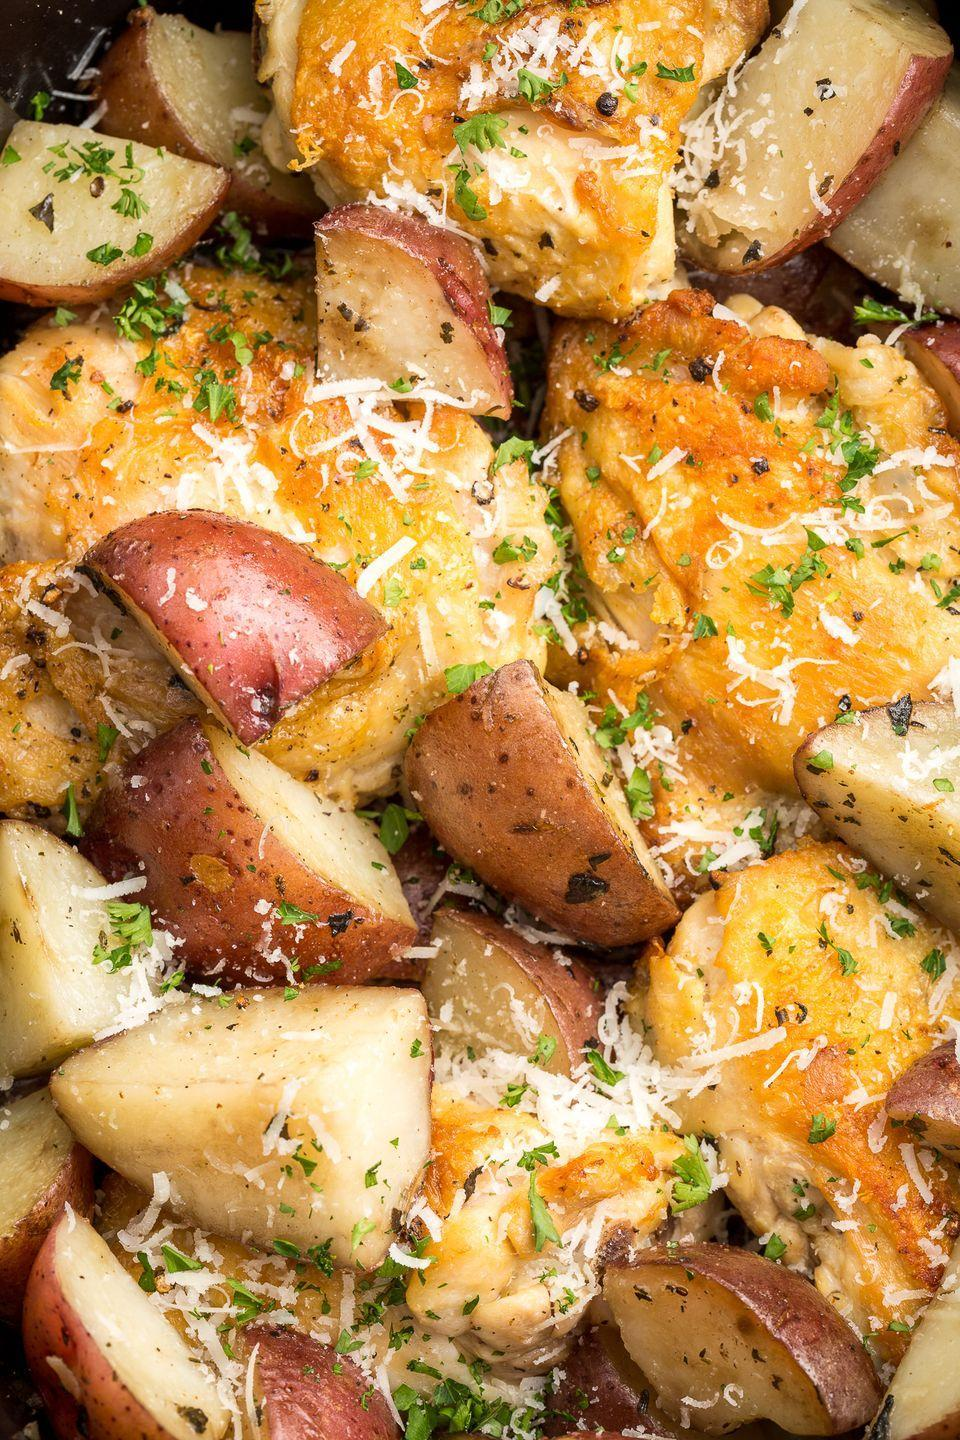 """<p>This recipe is taking over Pinterest. Try it yourself to find out why!</p><p>Get the recipe from <a href=""""https://www.delish.com/cooking/recipe-ideas/recipes/a46066/slow-cooker-garlic-parmesan-chicken-recipe/"""" rel=""""nofollow noopener"""" target=""""_blank"""" data-ylk=""""slk:Delish"""" class=""""link rapid-noclick-resp"""">Delish</a>.</p>"""